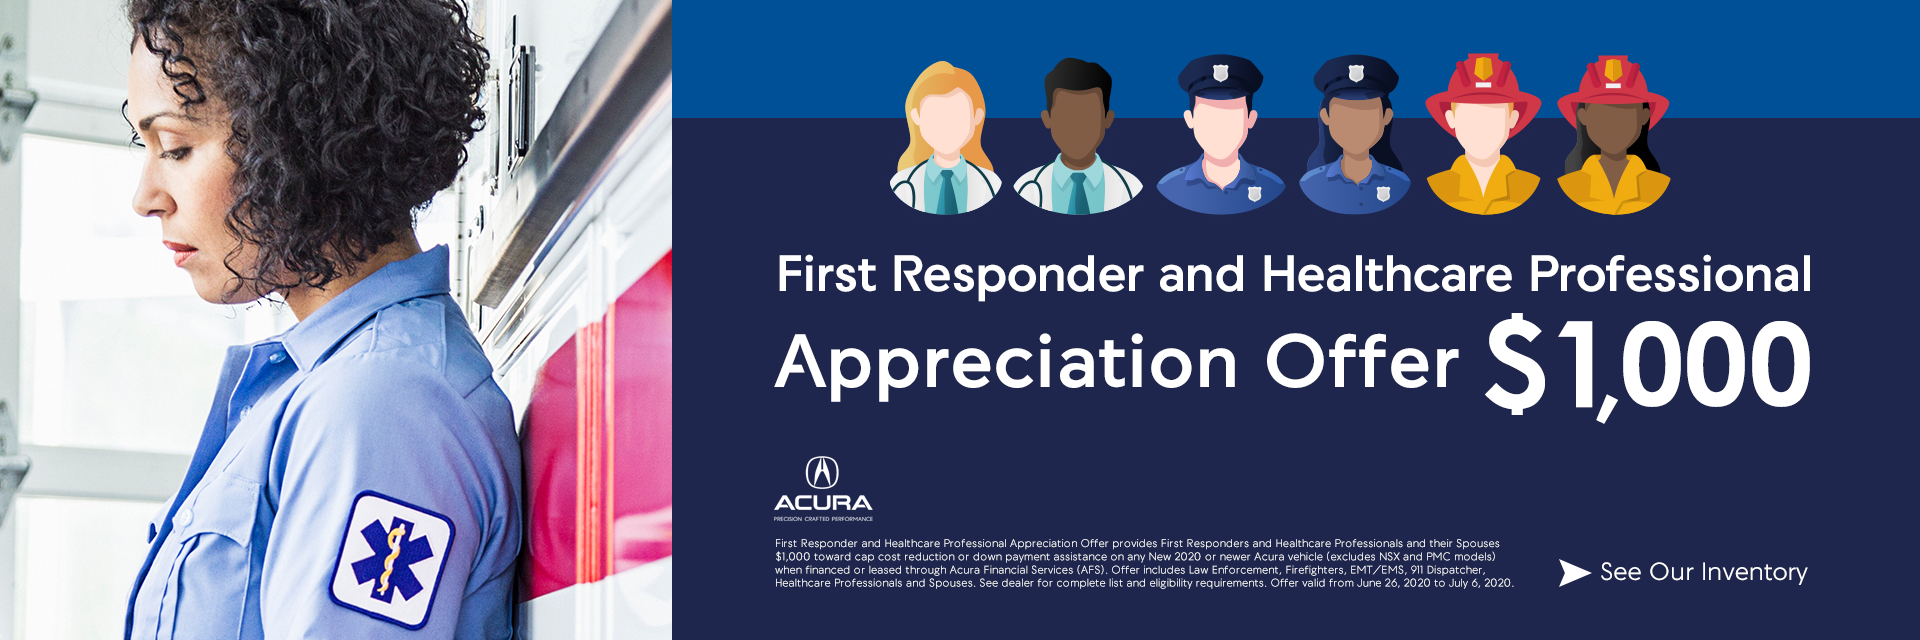 First Responder and Healthcare Professional Appreciation Offer Sunnyside Acura Nashua NH 03063